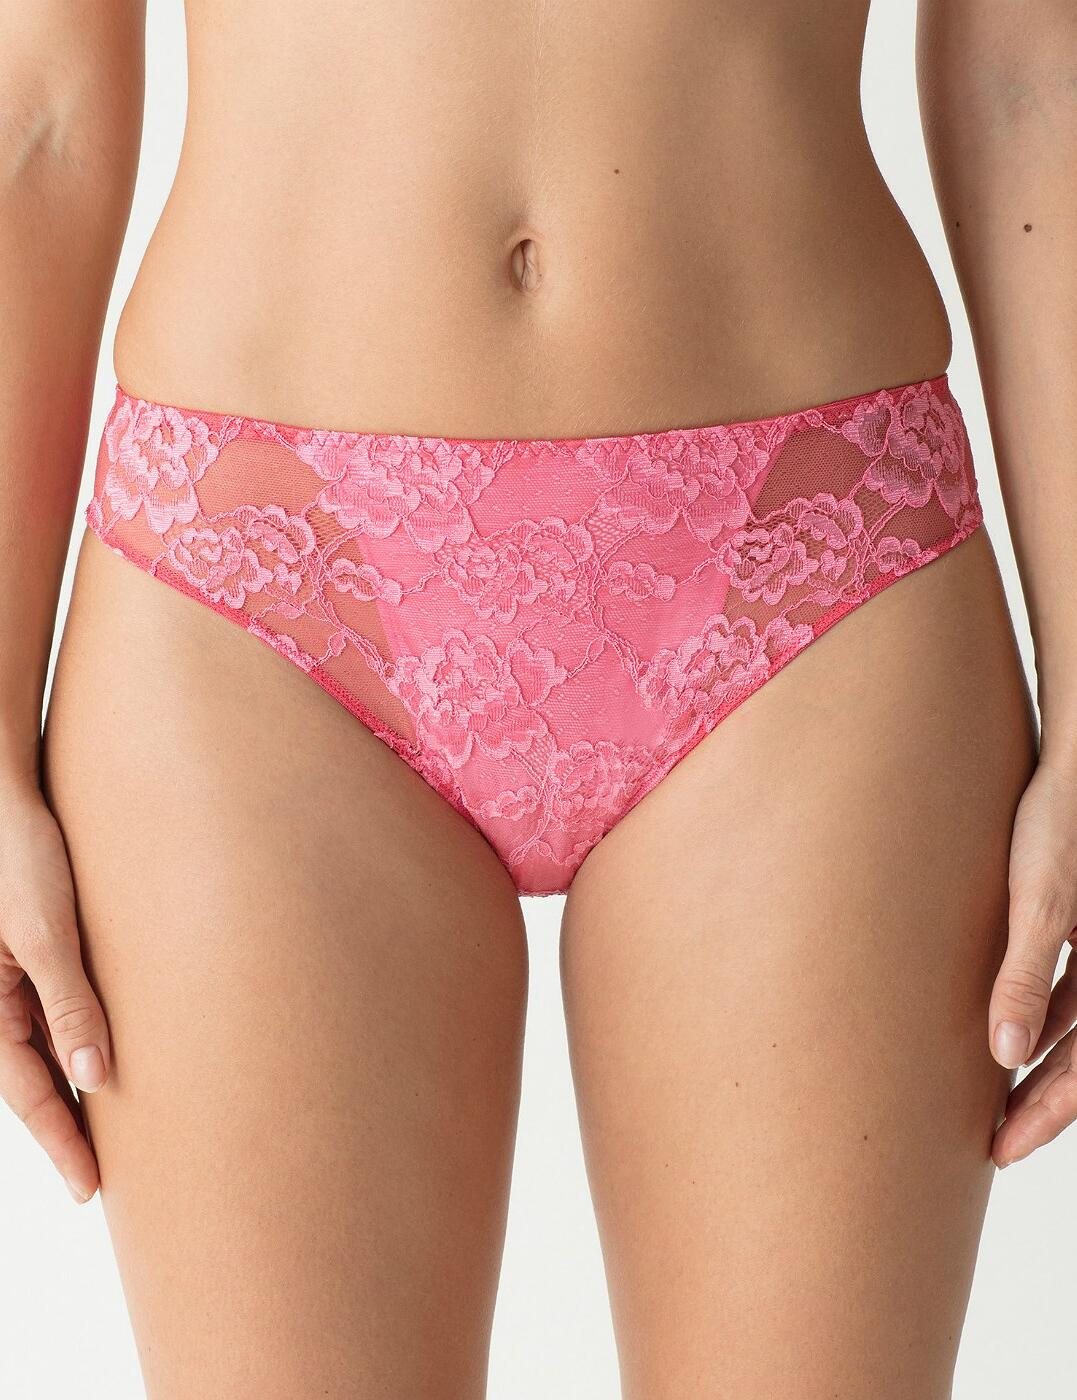 0541720 Prima Donna Twist Wild Rose Rio Briefs - 0541720 Tagada